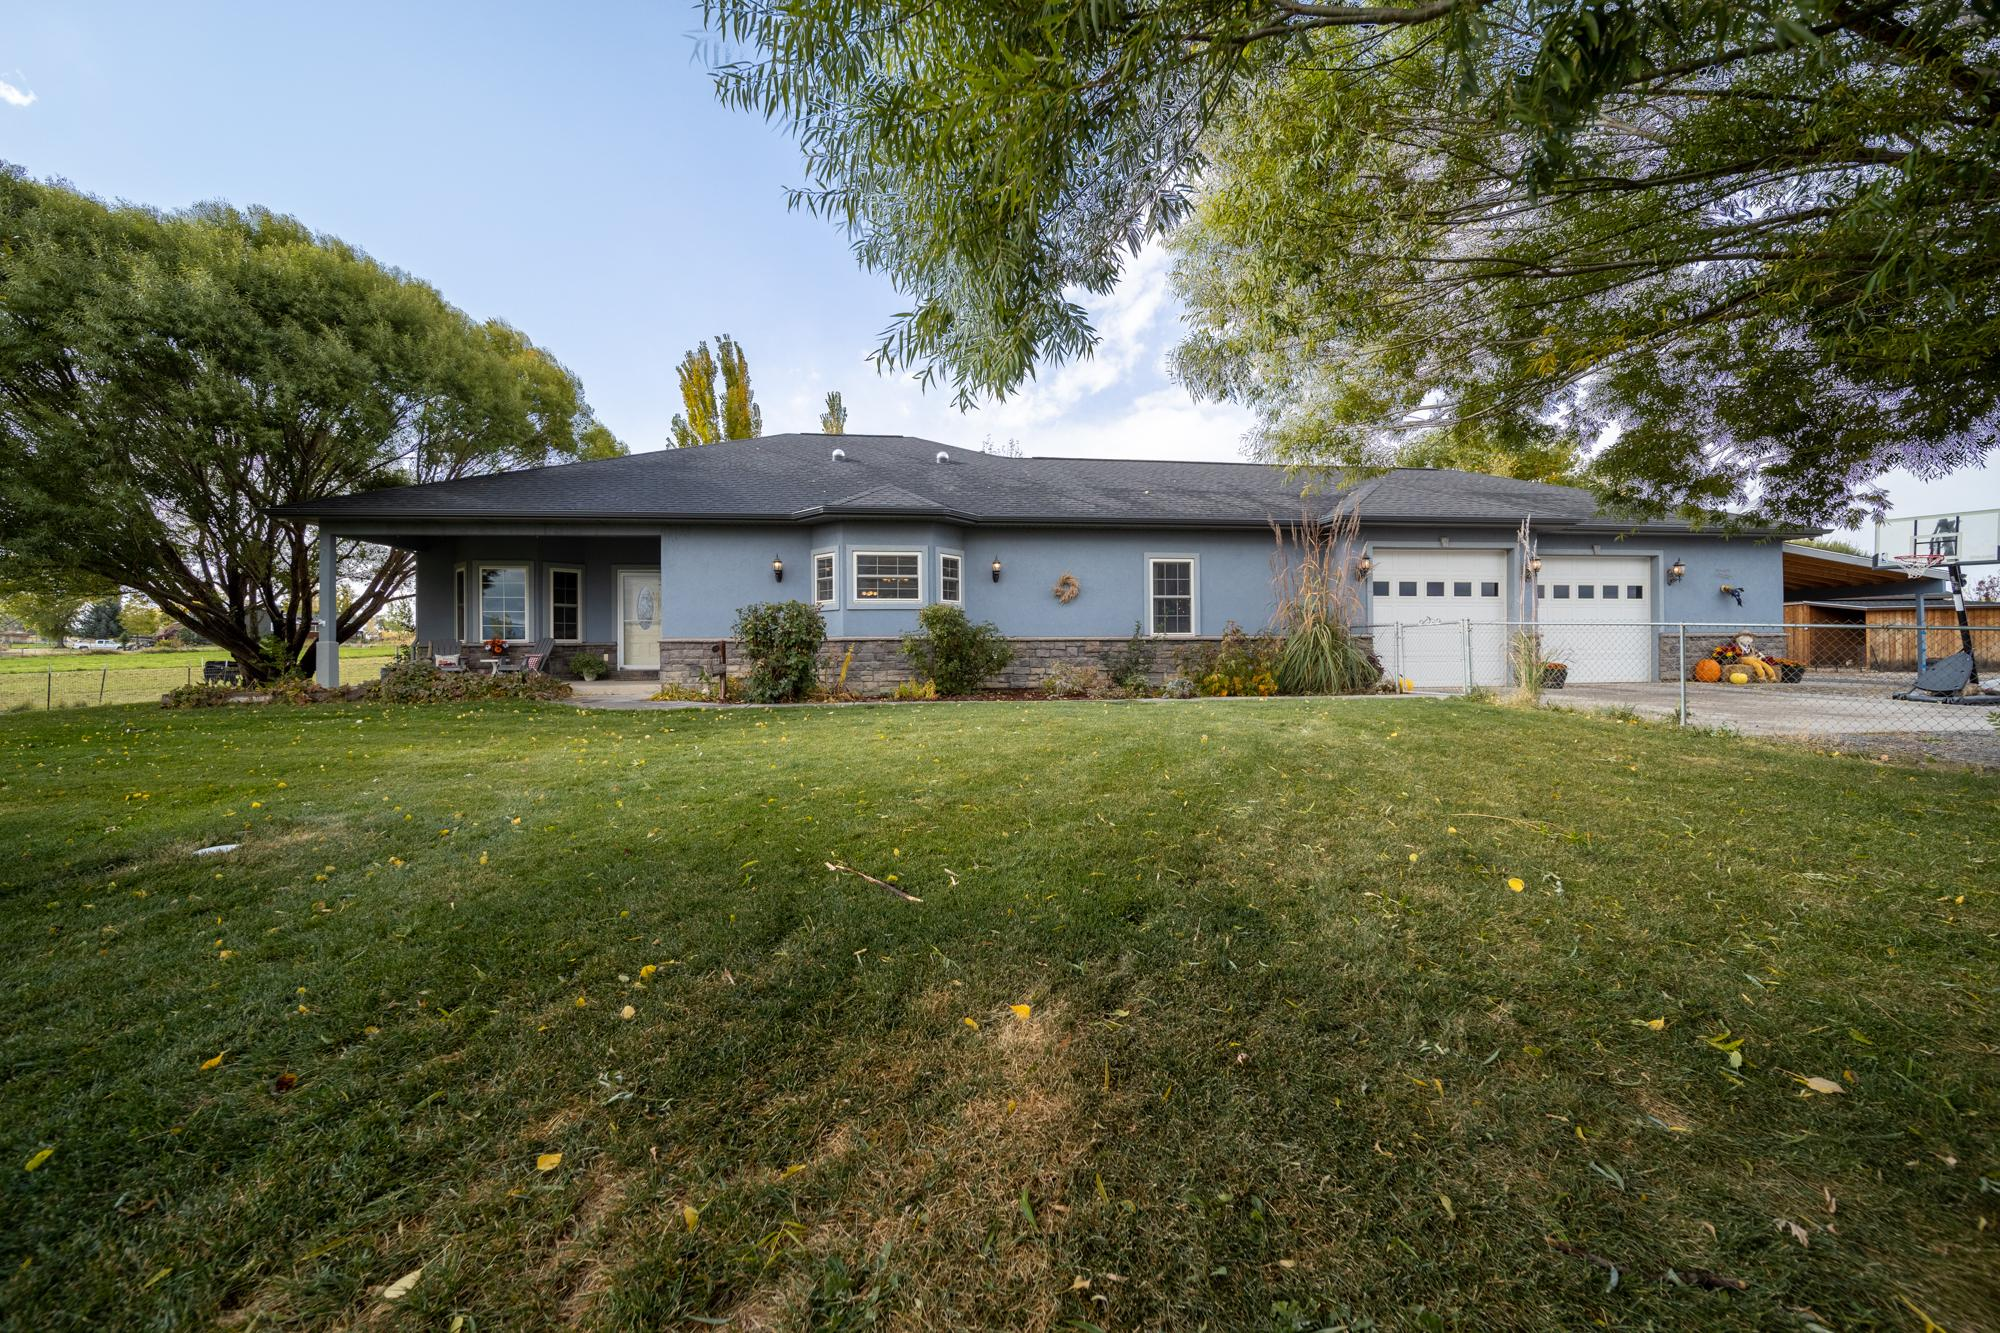 Front of Home for Sale - 12703 6100 Rd Montrose, CO 81403 - Atha Team Country Real Estate